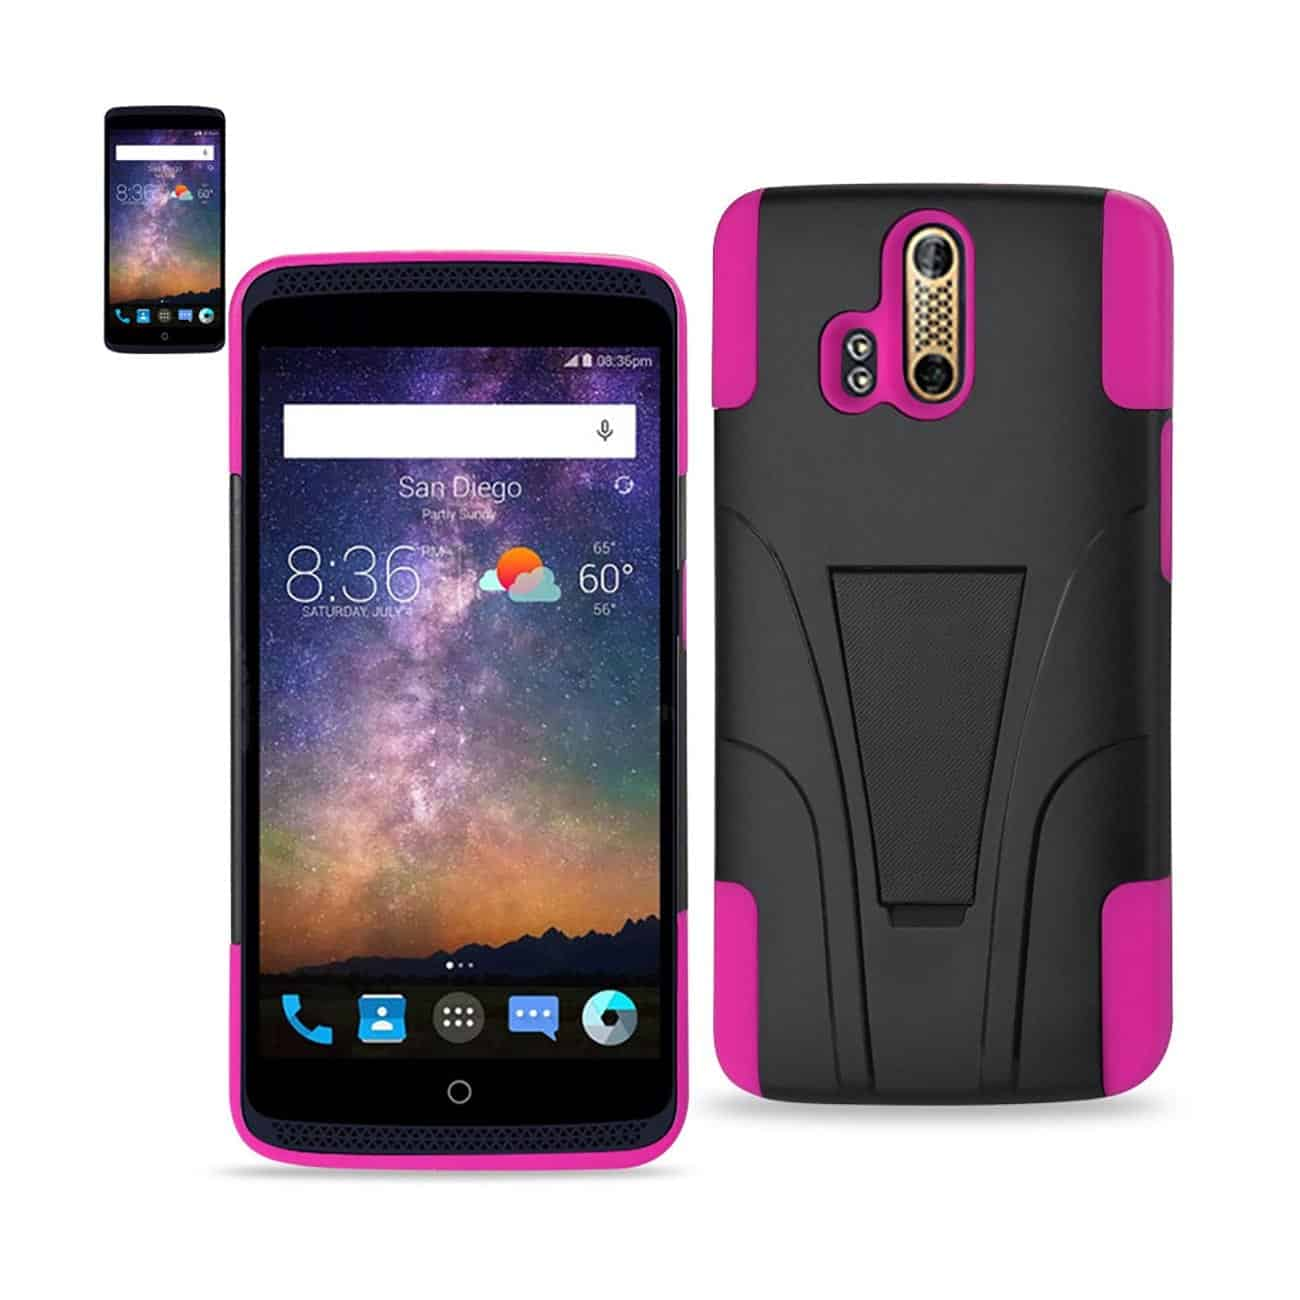 ZTE AXON PRO HYBRID HEAVY DUTY CASE WITH KICKSTAND IN HOT PINK BLACK